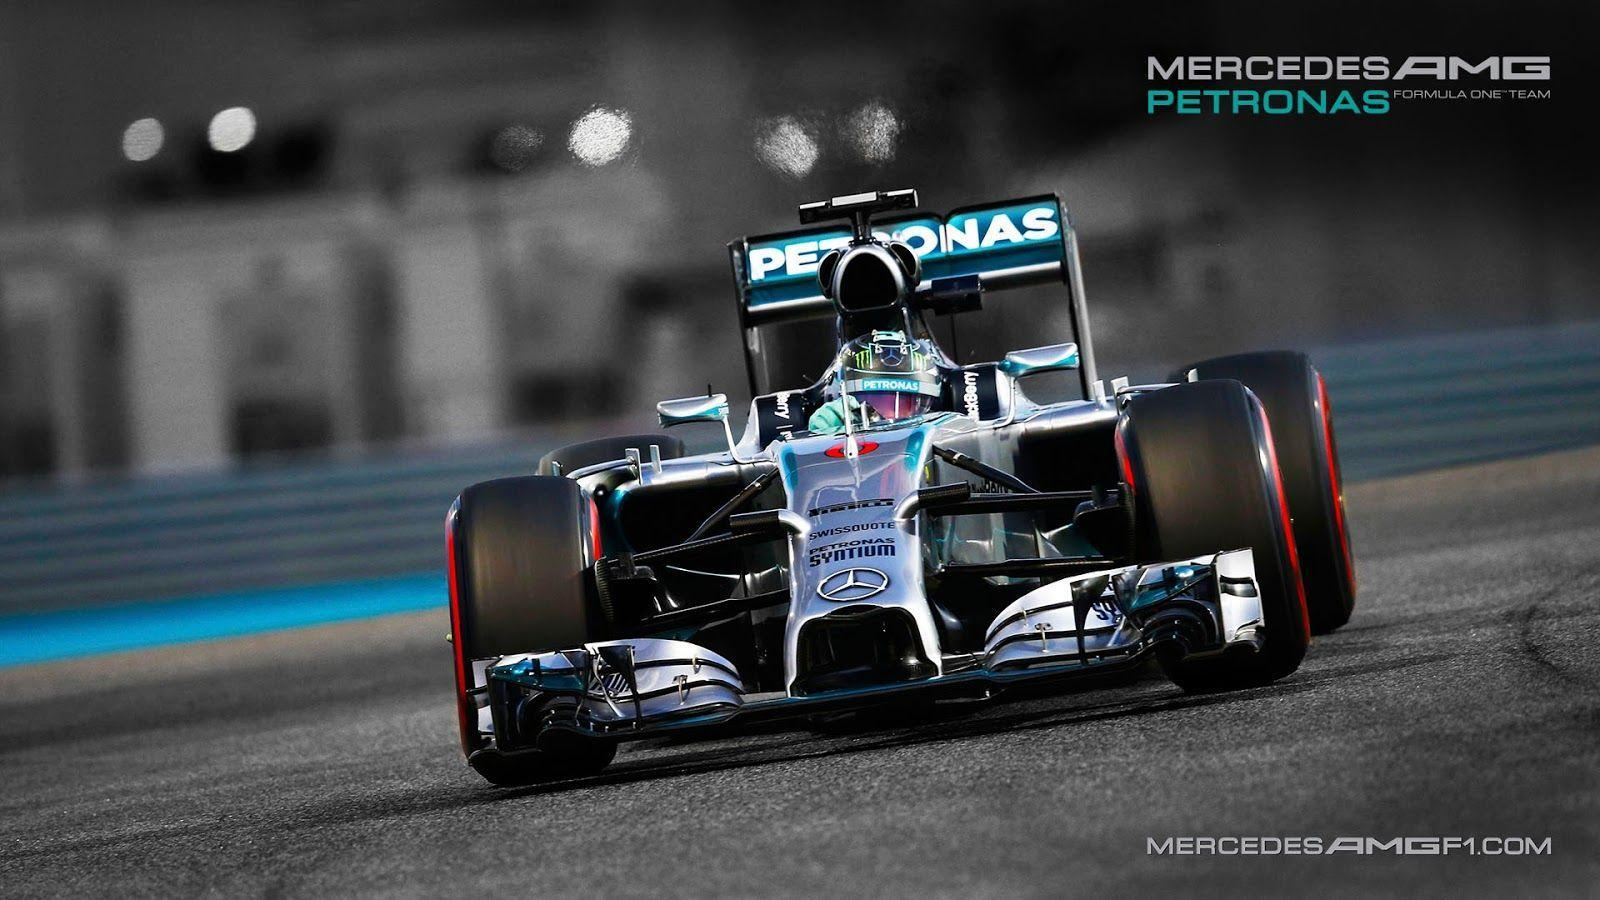 Mercedes w08 wallpapers wallpaper cave for Mercedes benz f1